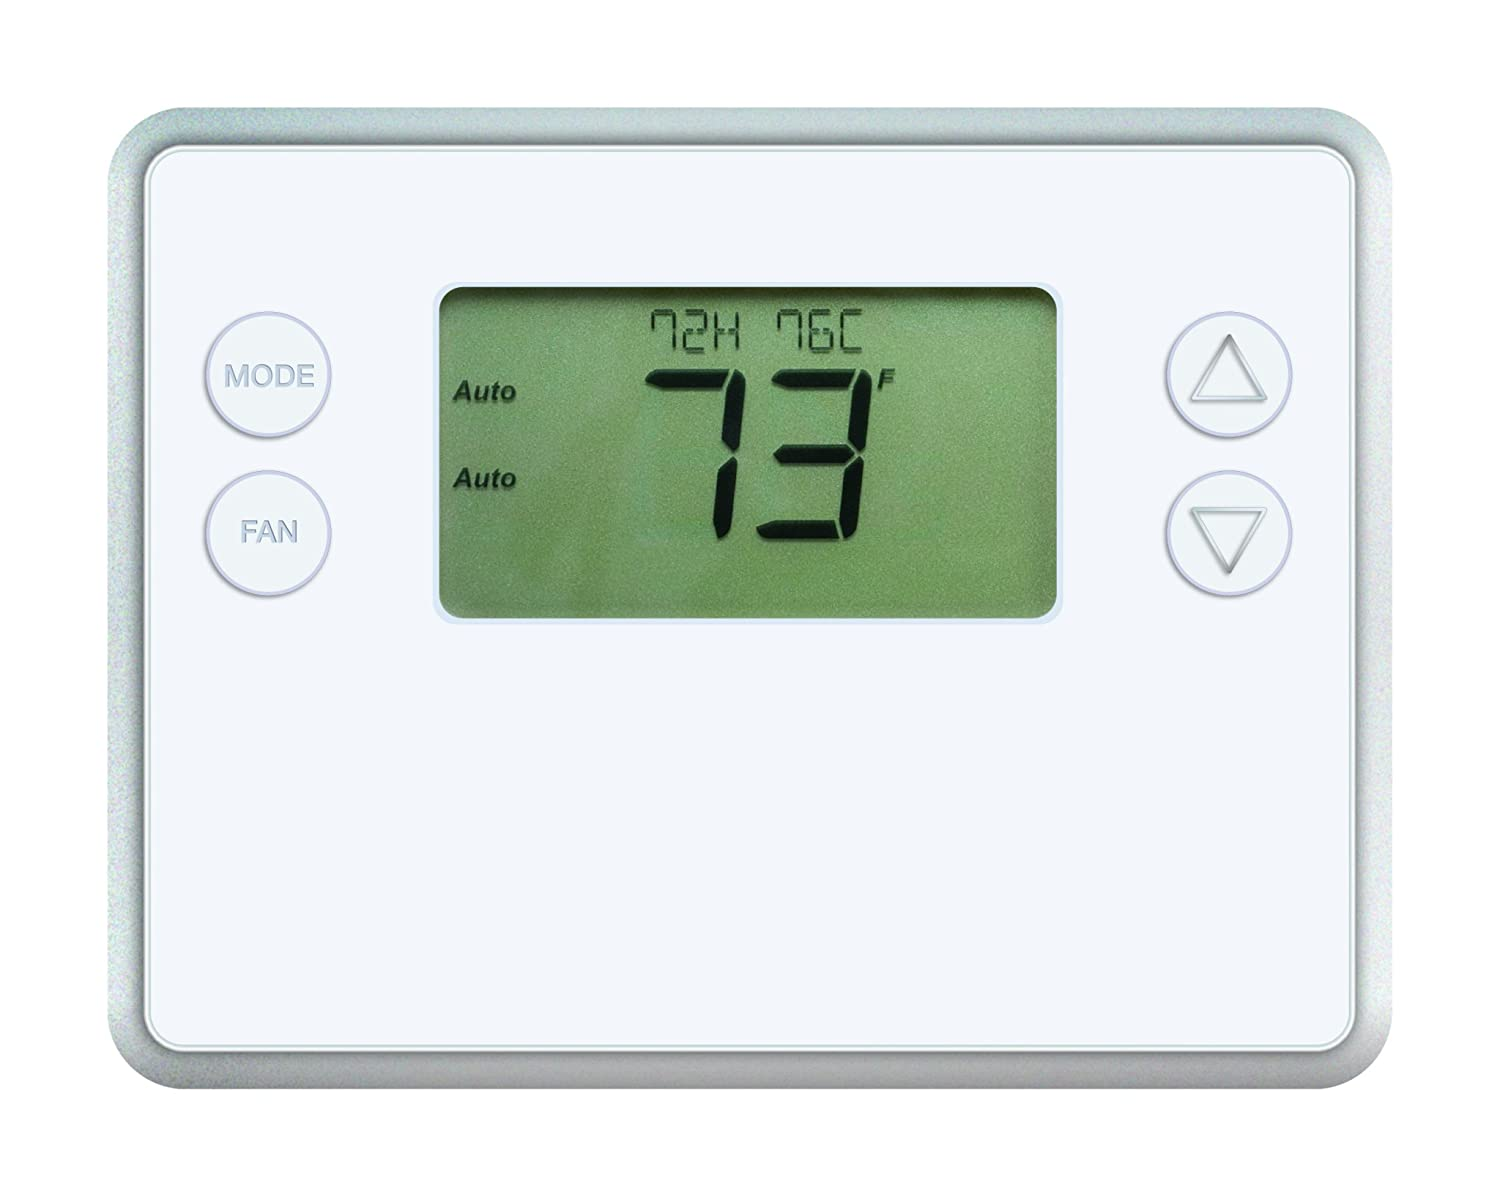 amazon com gocontrol thermostat z wave battery powered works rh amazon com Iris Thermostat Control Iris Thermostat Logo